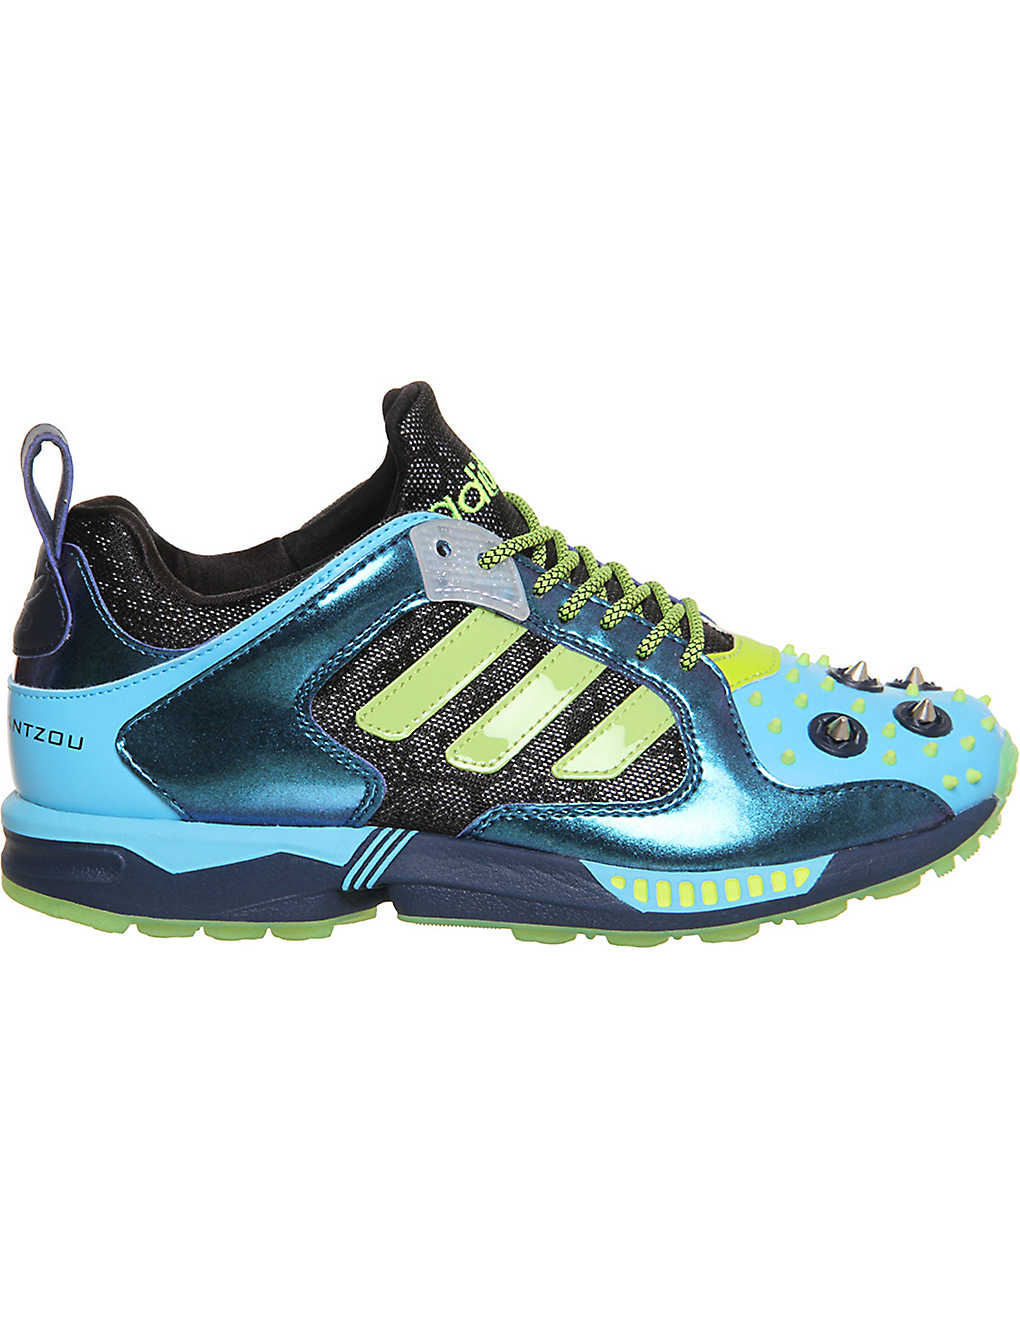 ADIDAS - Decathlon silver stud zx 5000 sneakers by mary katrantzou ... 698ee5a88ea7